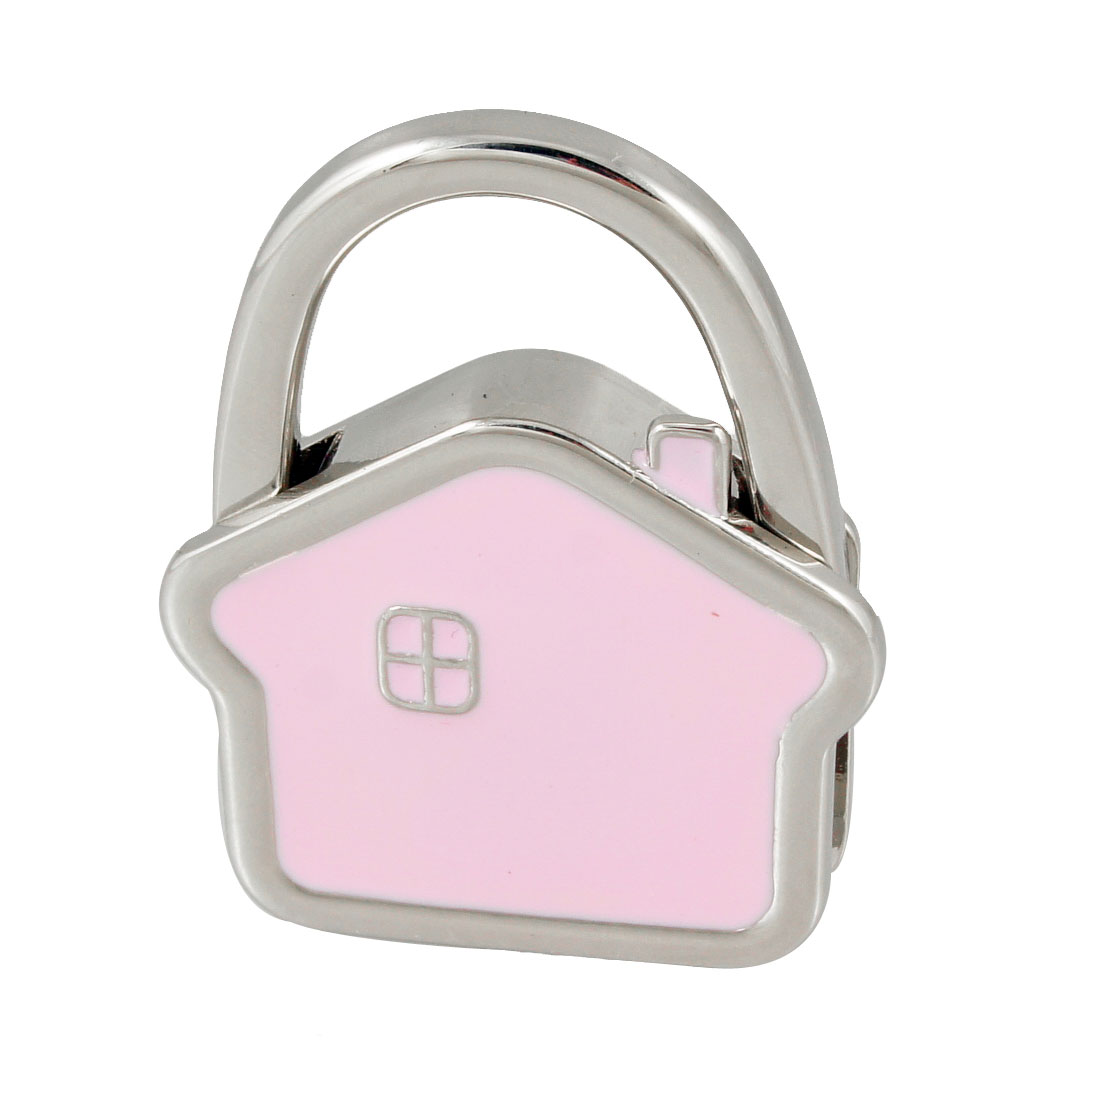 Silver Tone Pink Metal House Design Base Foldable Handbag Purse Hanger